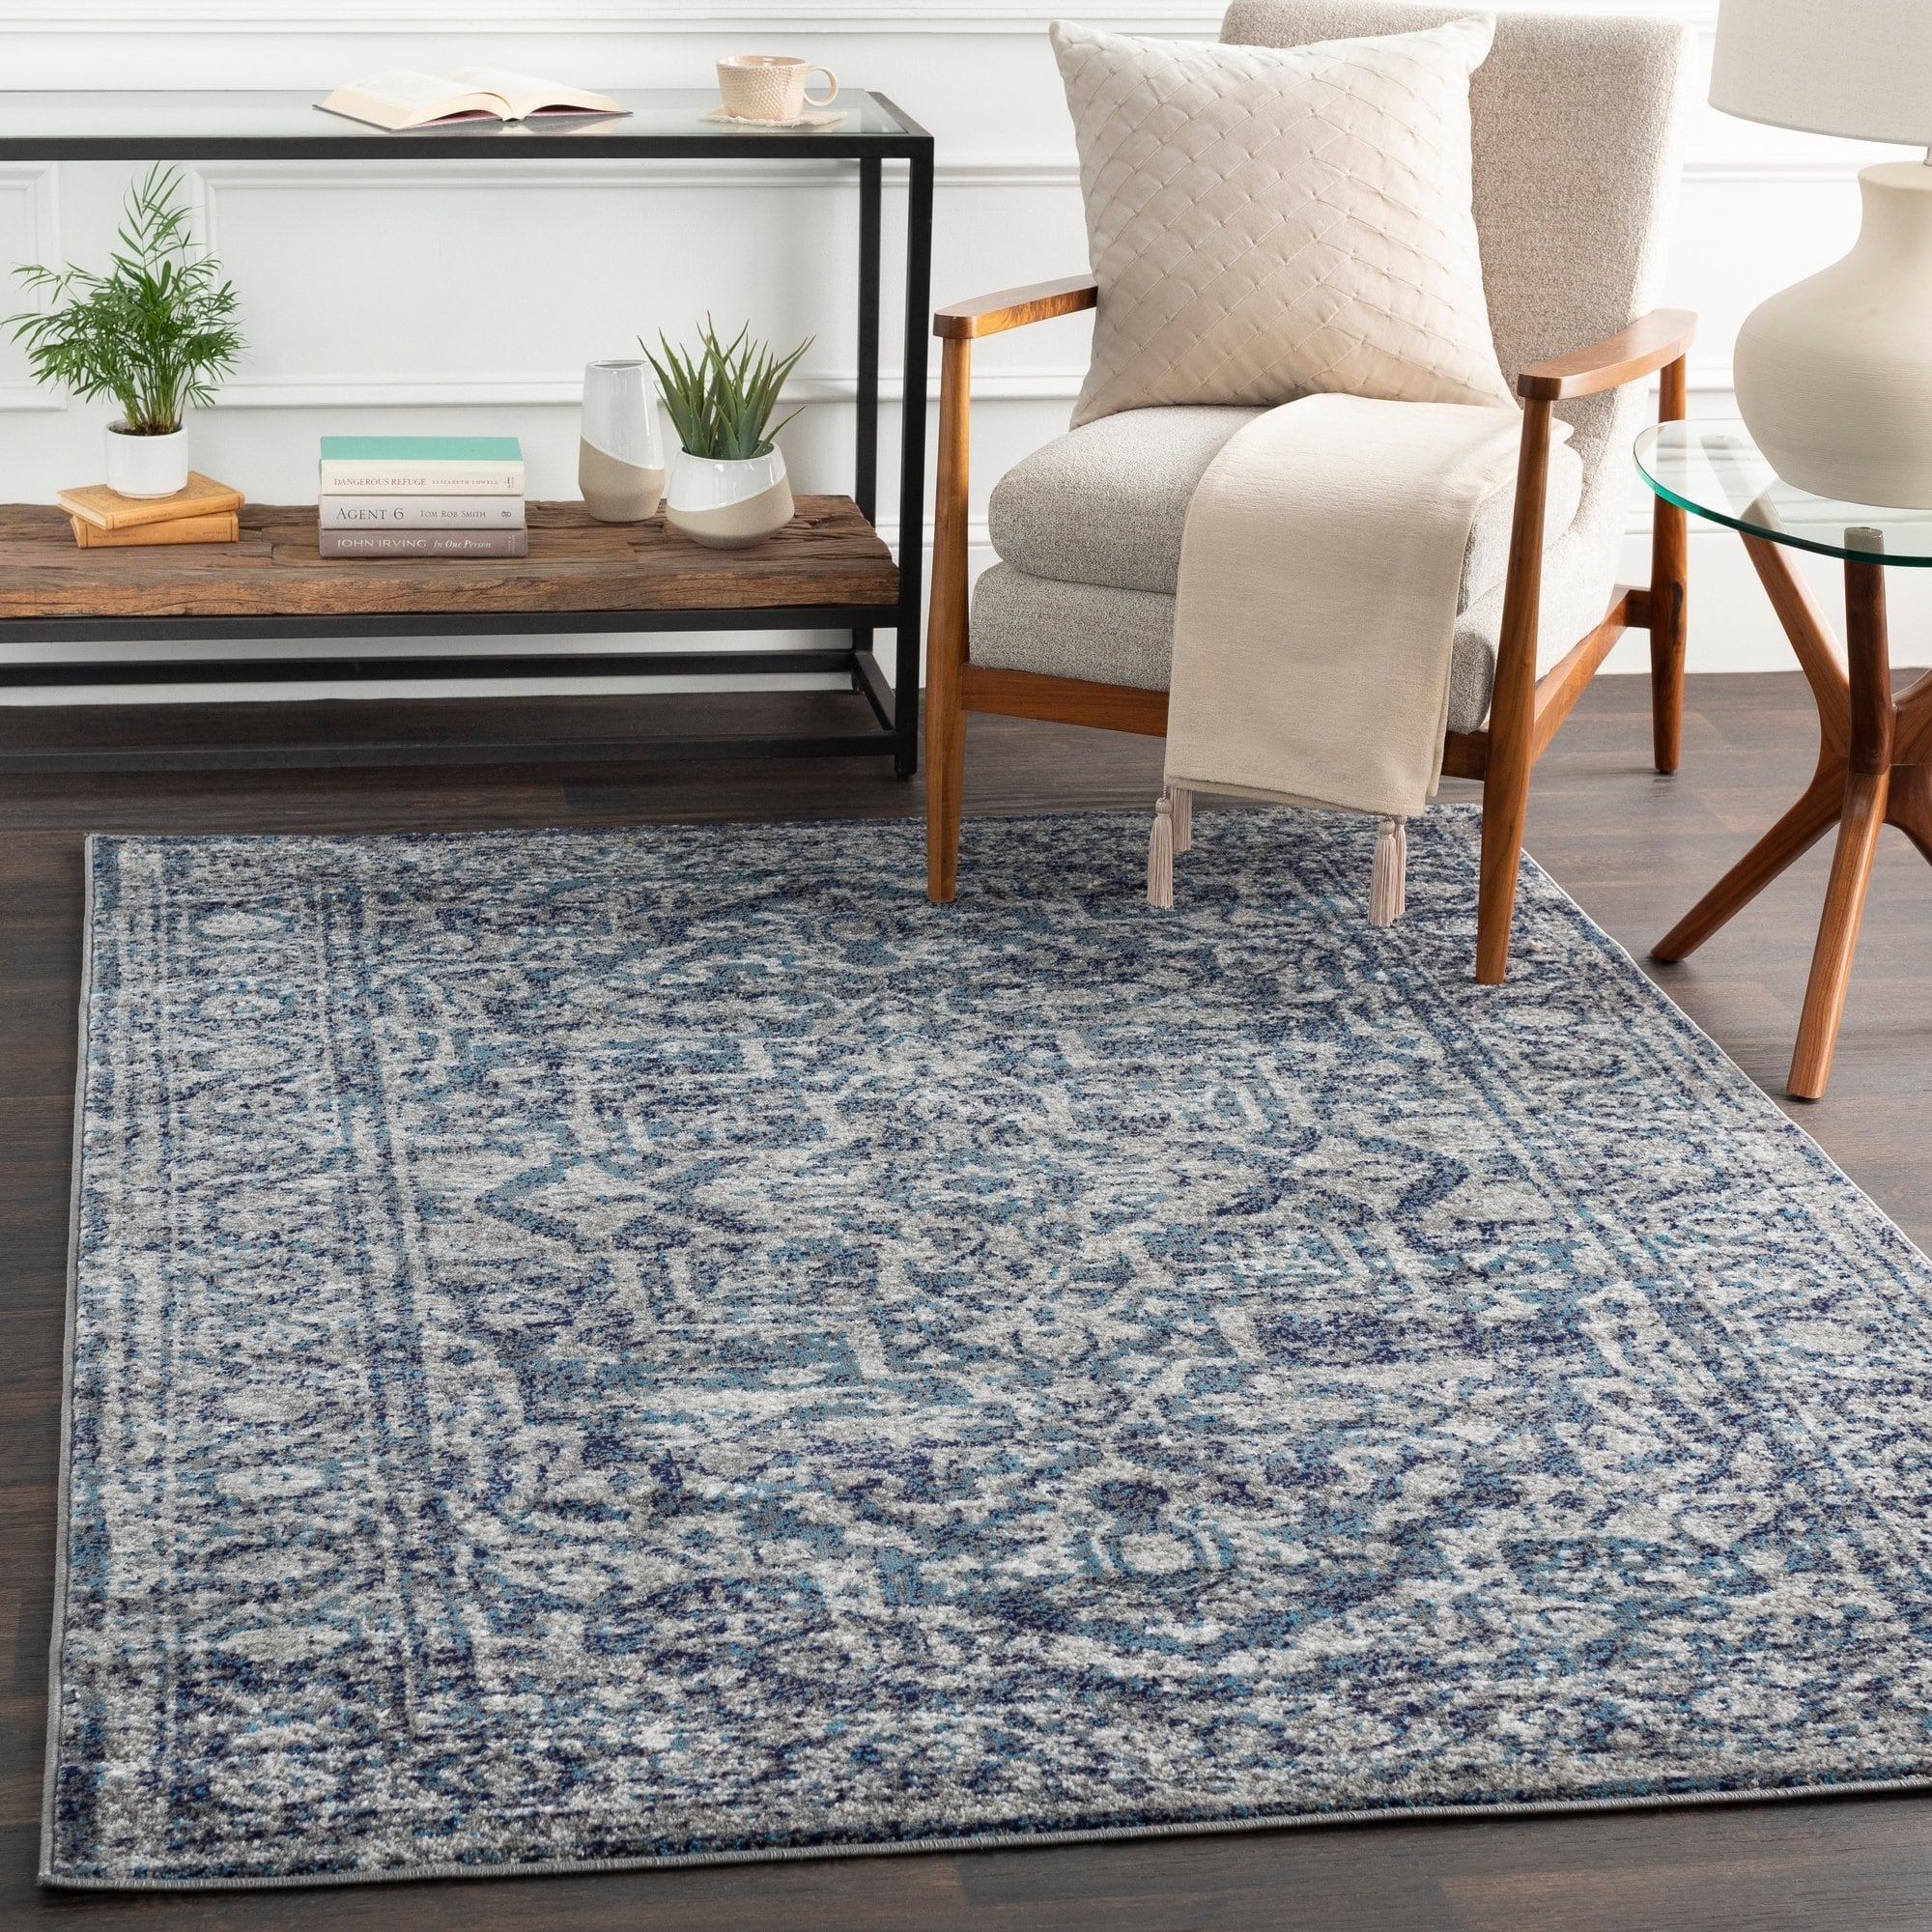 Vintage Navy Blue Gray White Area Rug Modern Rugs And Decor